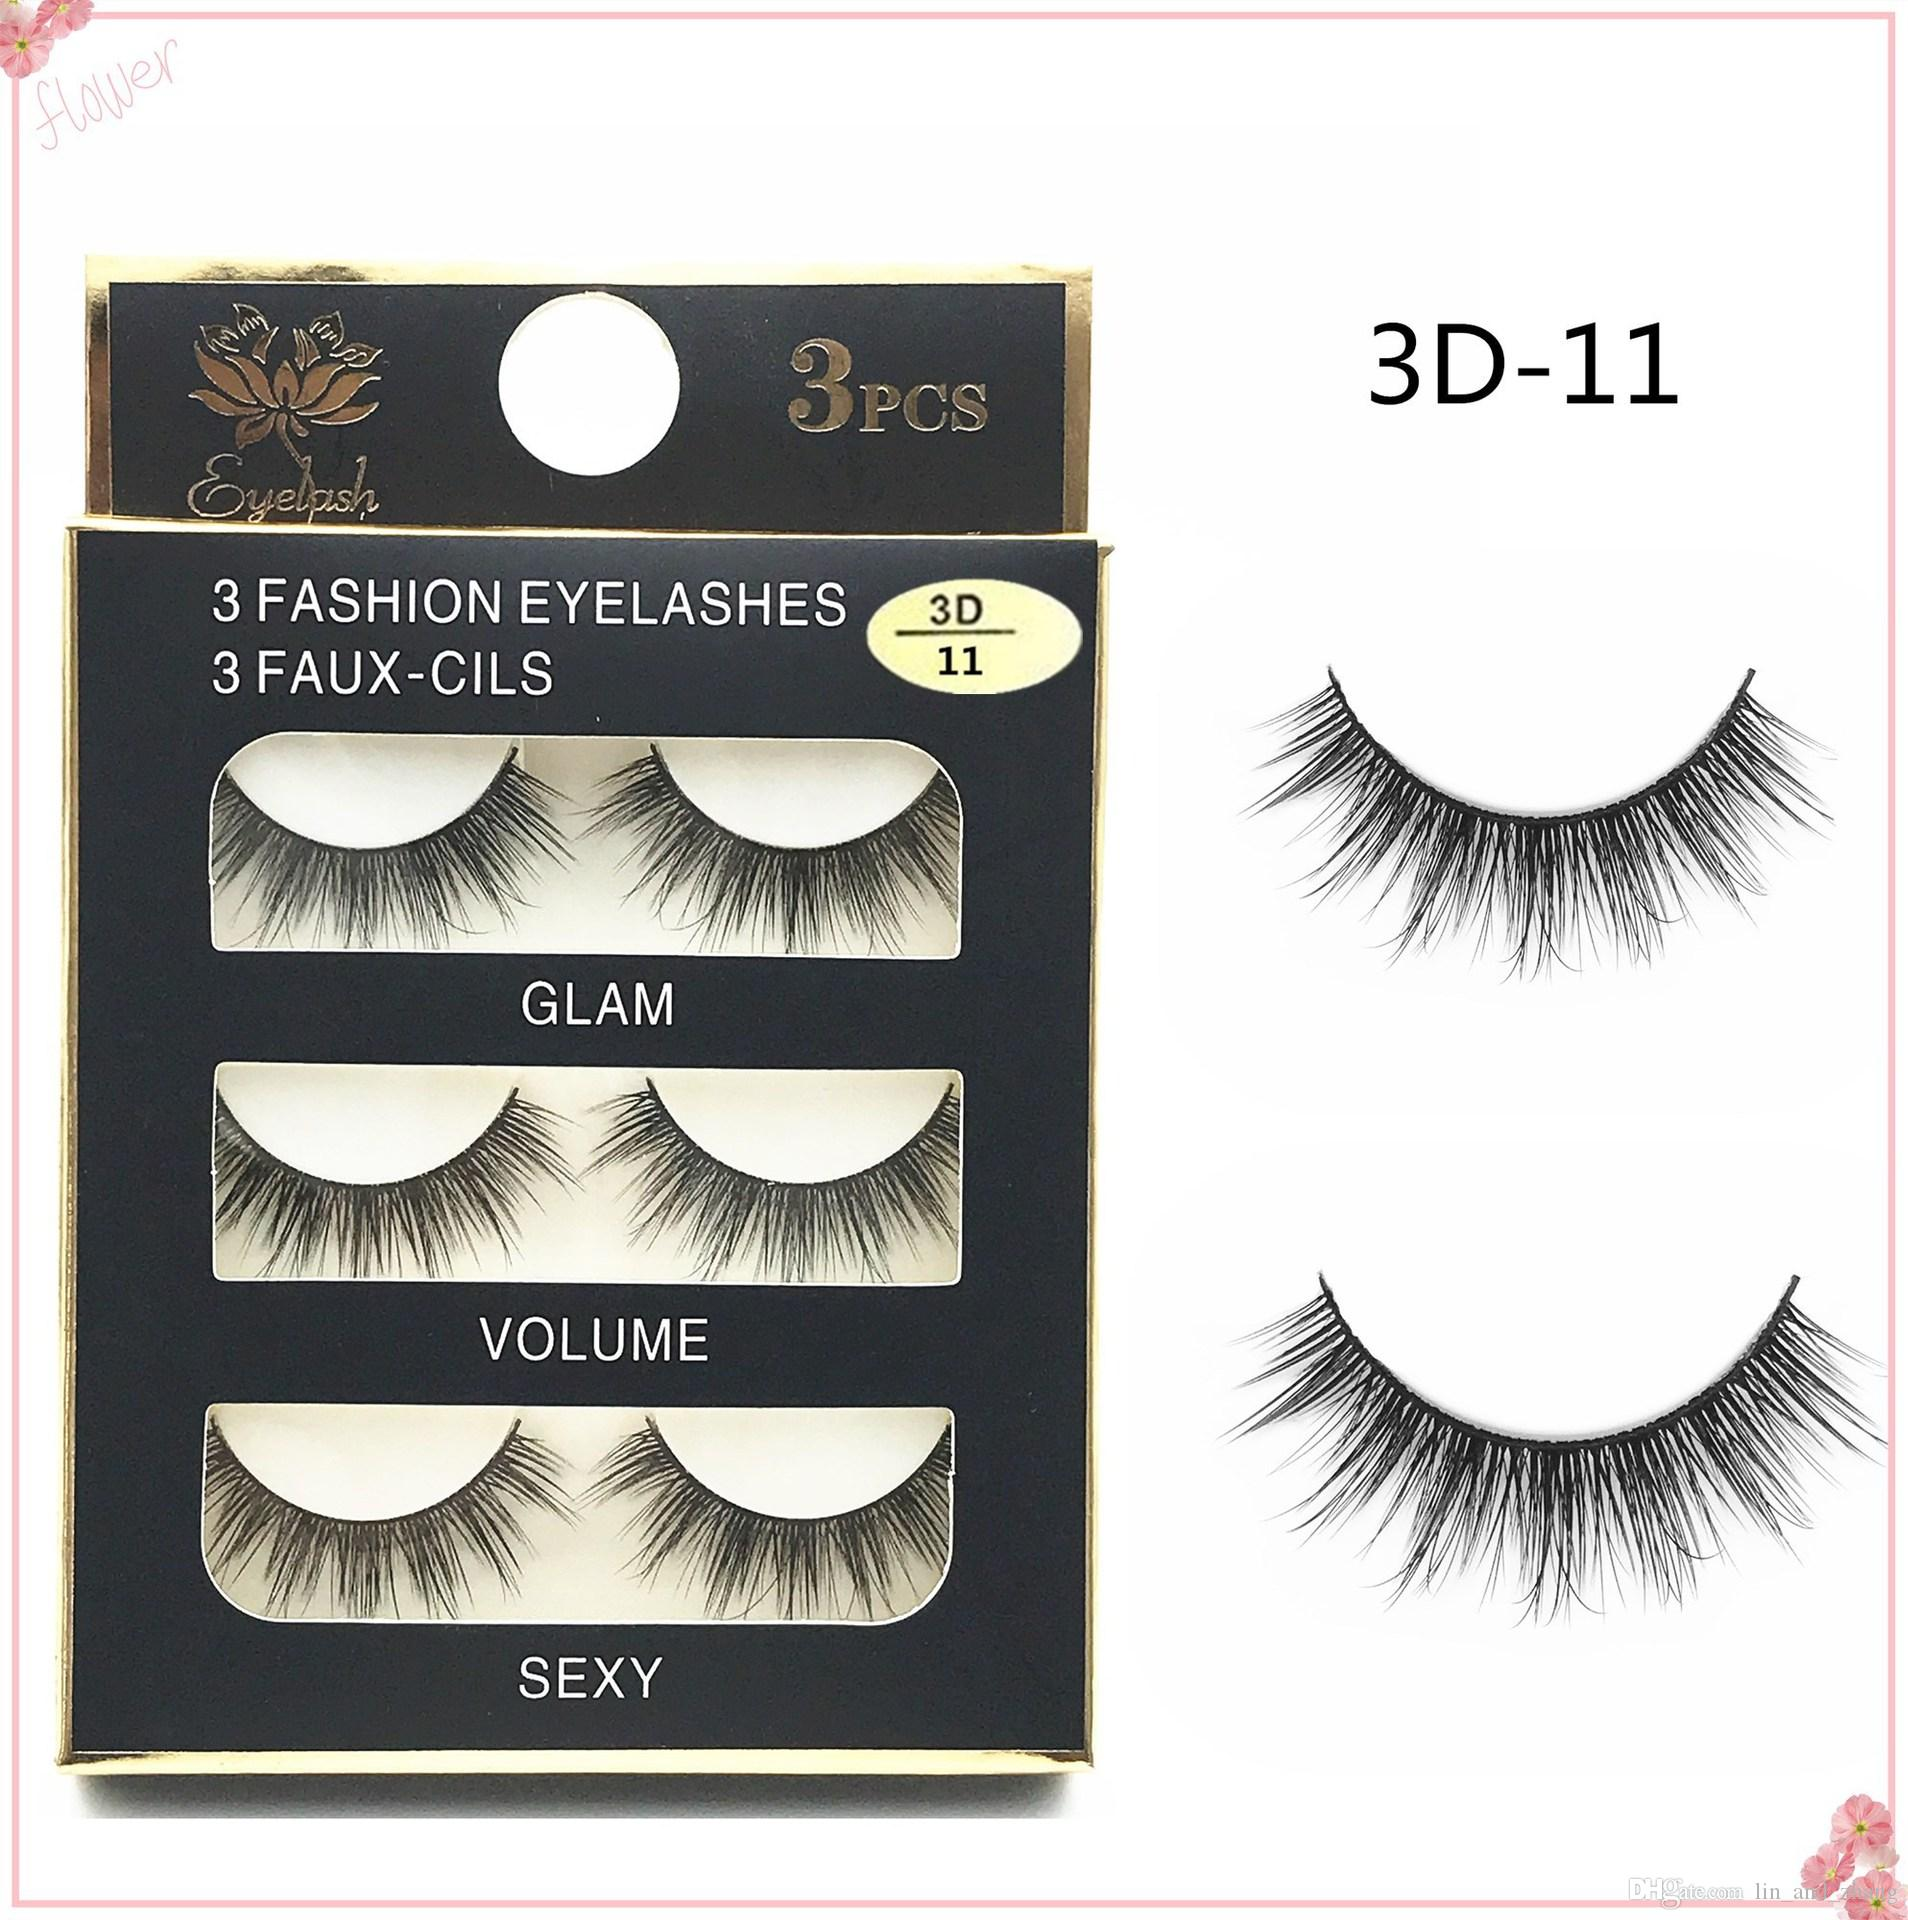 bb67e4a69b0 Hot Sale New 3D Natural Cross Thick False Eyelashes Long Makeup 3D Lashes  Fake Eye Lashes Extension Make Up Beauty 3D 11 Eyelash Extensions London  Eyelash ...